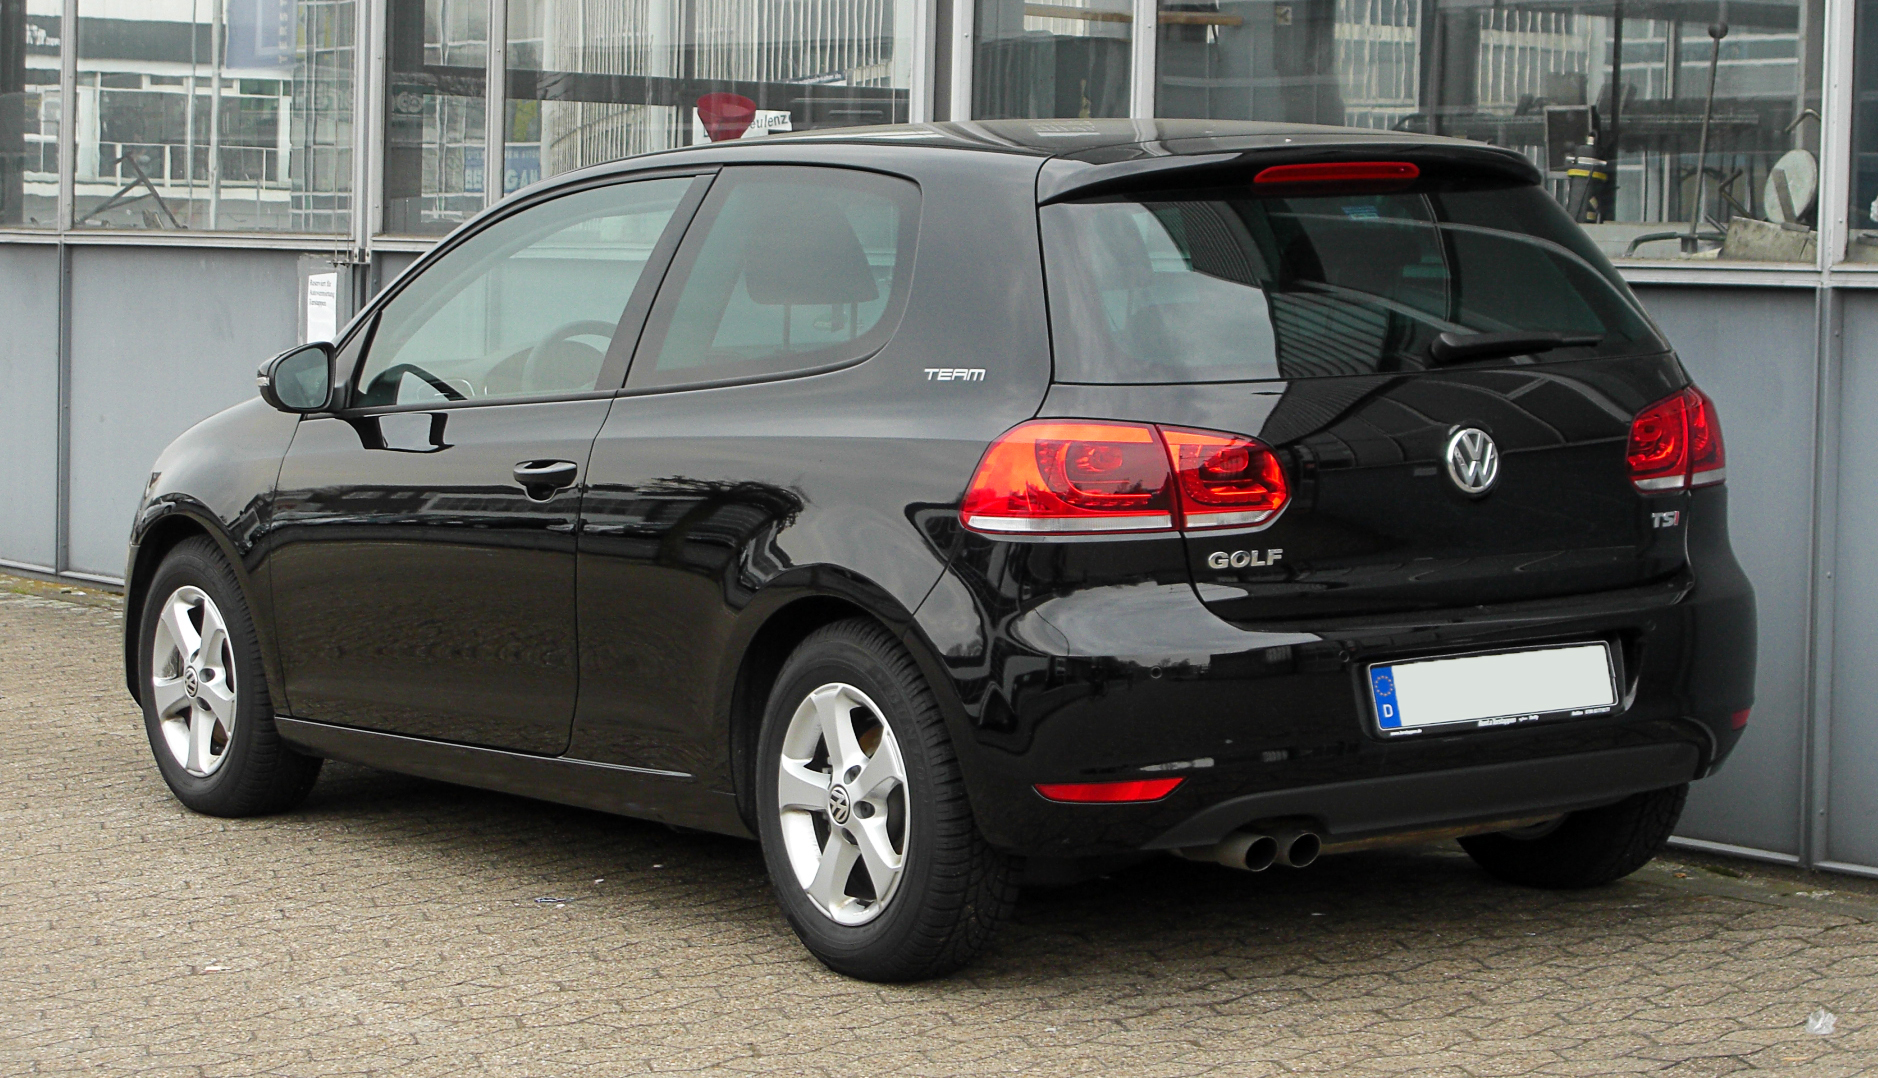 Volkswagen Golf 1.4 2011 photo - 1